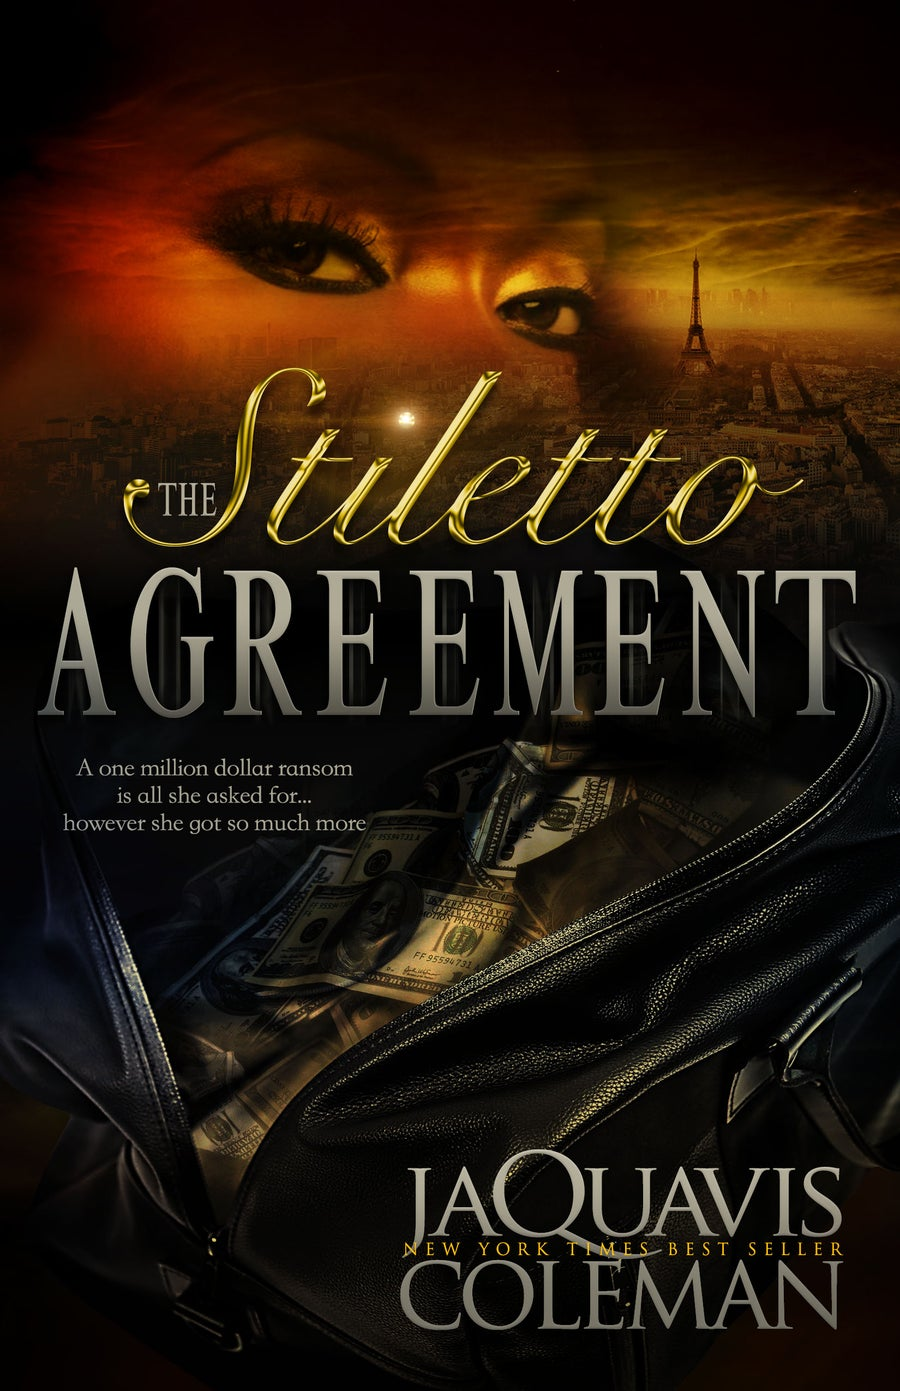 Image of (Autographed) Stiletto Agreement